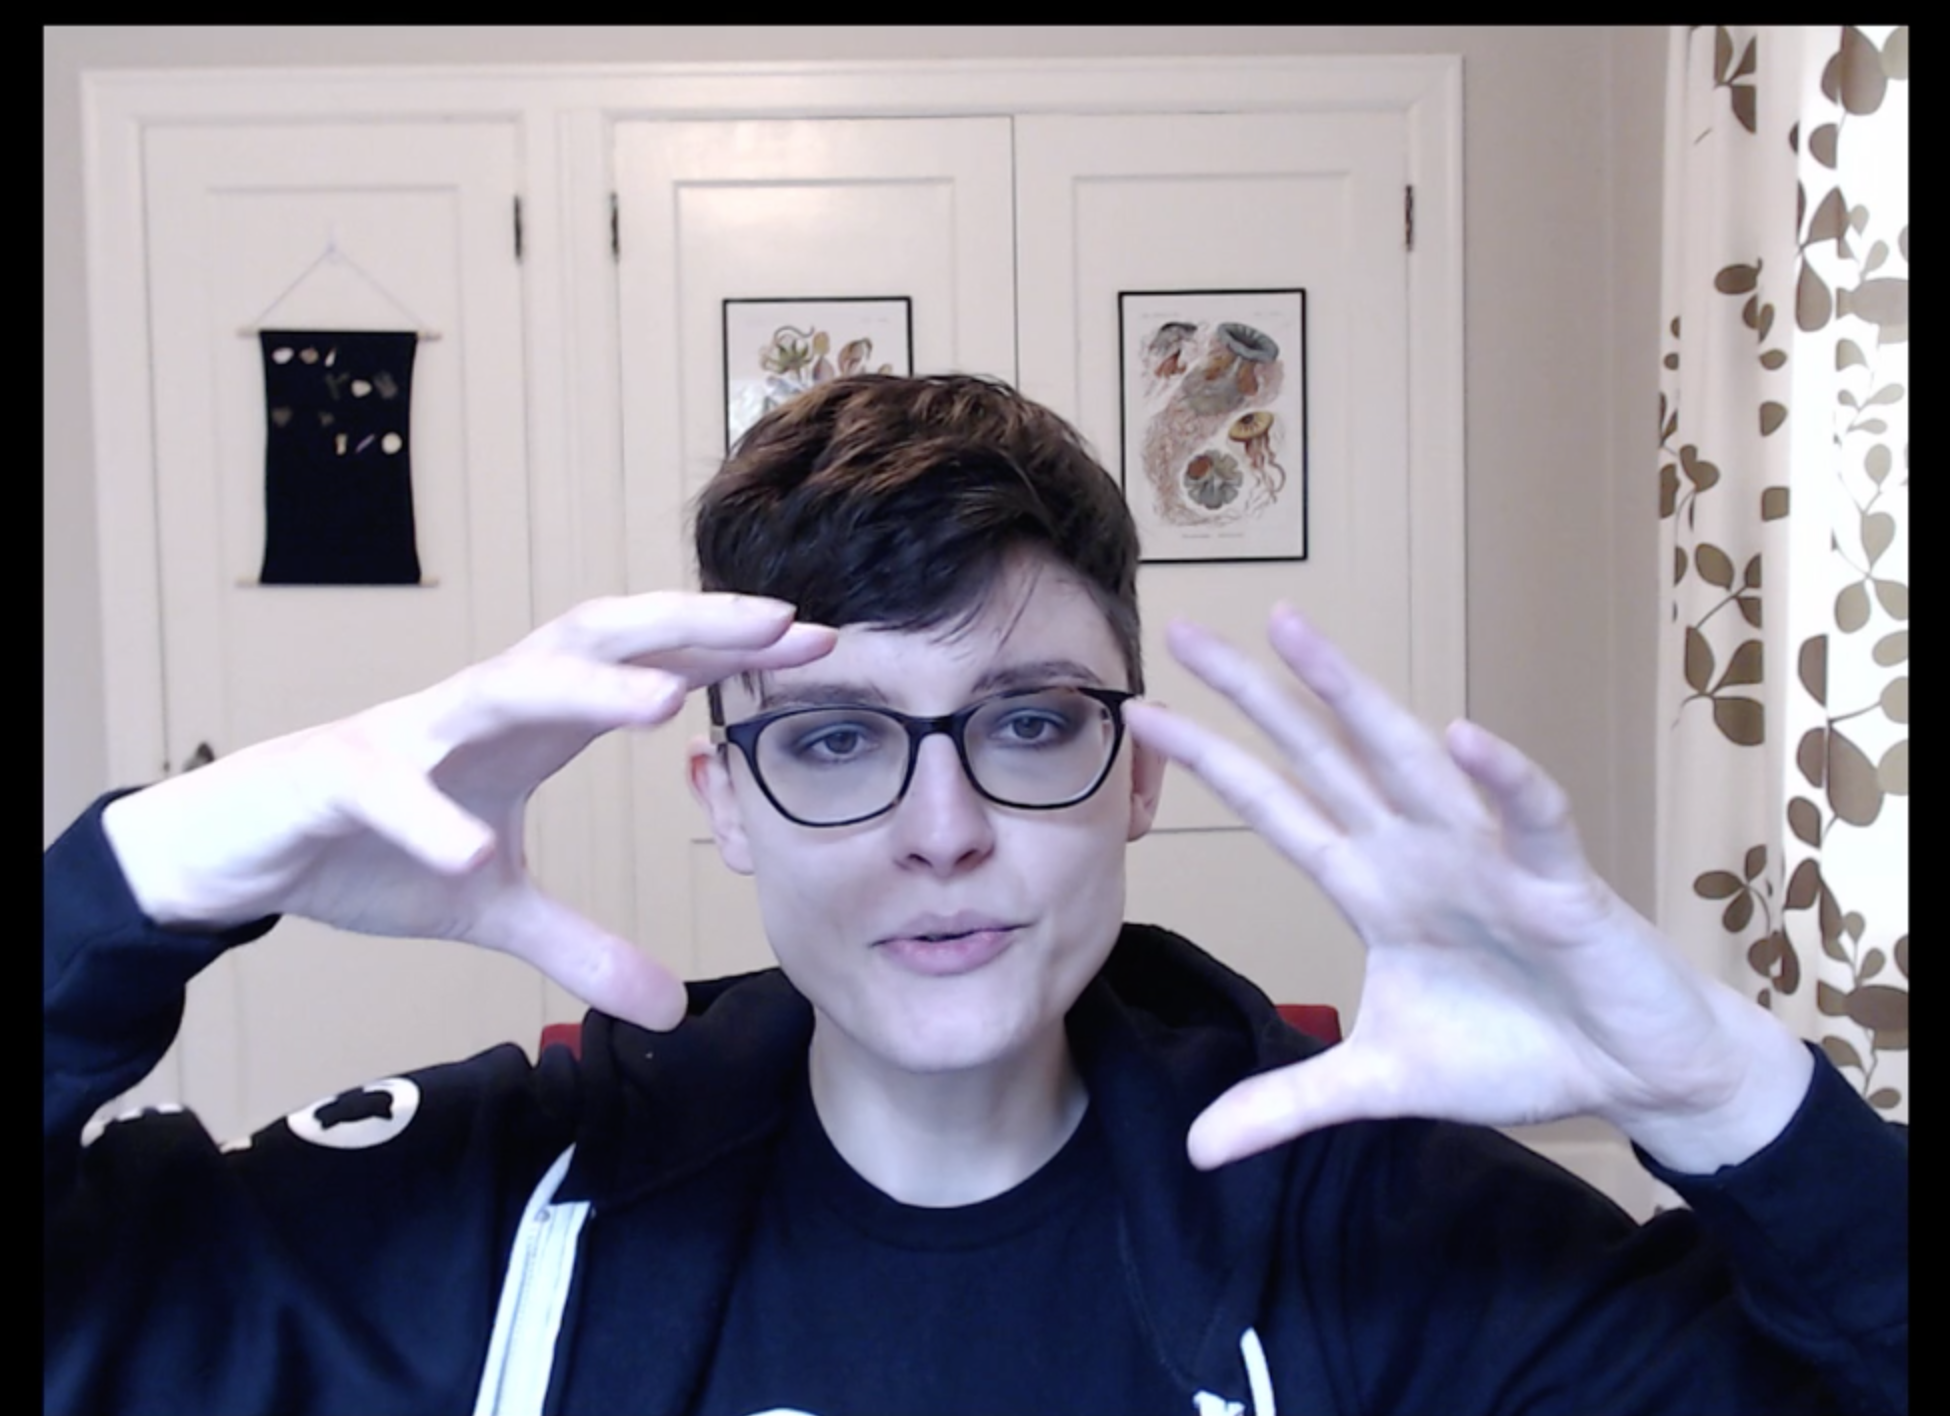 Screenshot from one of my CTF streams on Twitch. I'm dressed in black and explaining something with my hands, which are raised on either side of my face. I'm well-lit, in-focus, and in-frame.